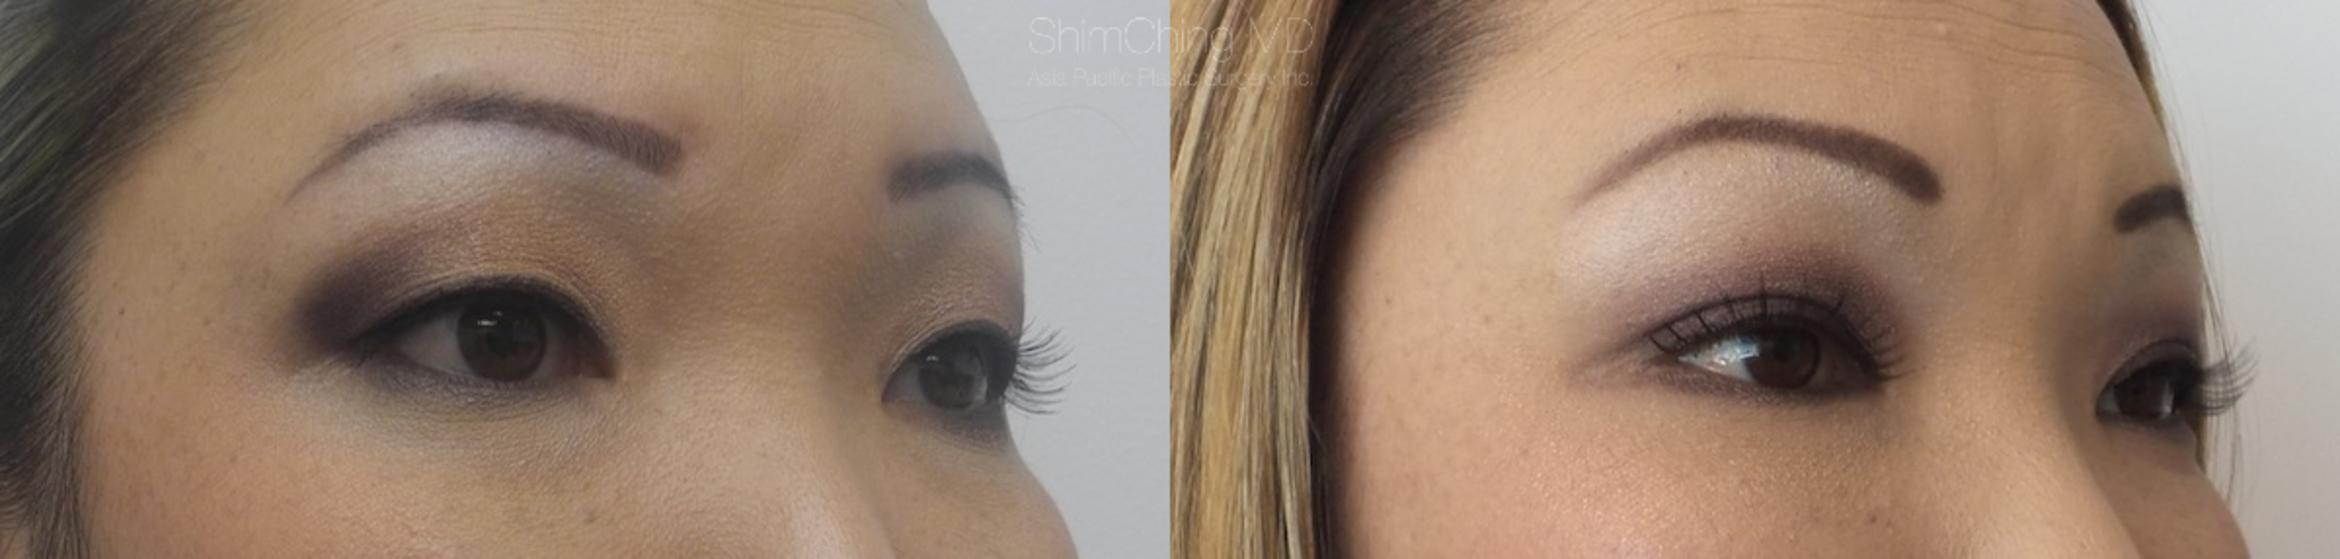 Asian Eyelid Case 4 Before & After View #3 | Honolulu, HI | Shim Ching, MD: Asia Pacific Plastic Surgery